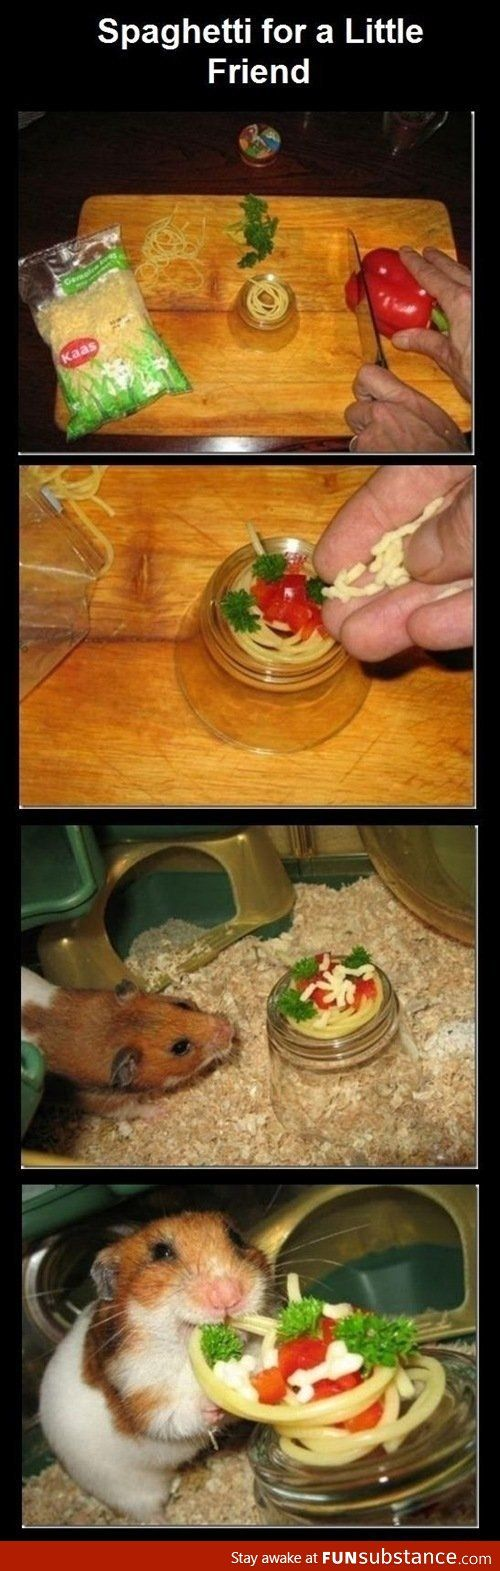 Sphagetti for a Little Friend. Laugh out loud. Adorable, furry animal. Squee. Ha